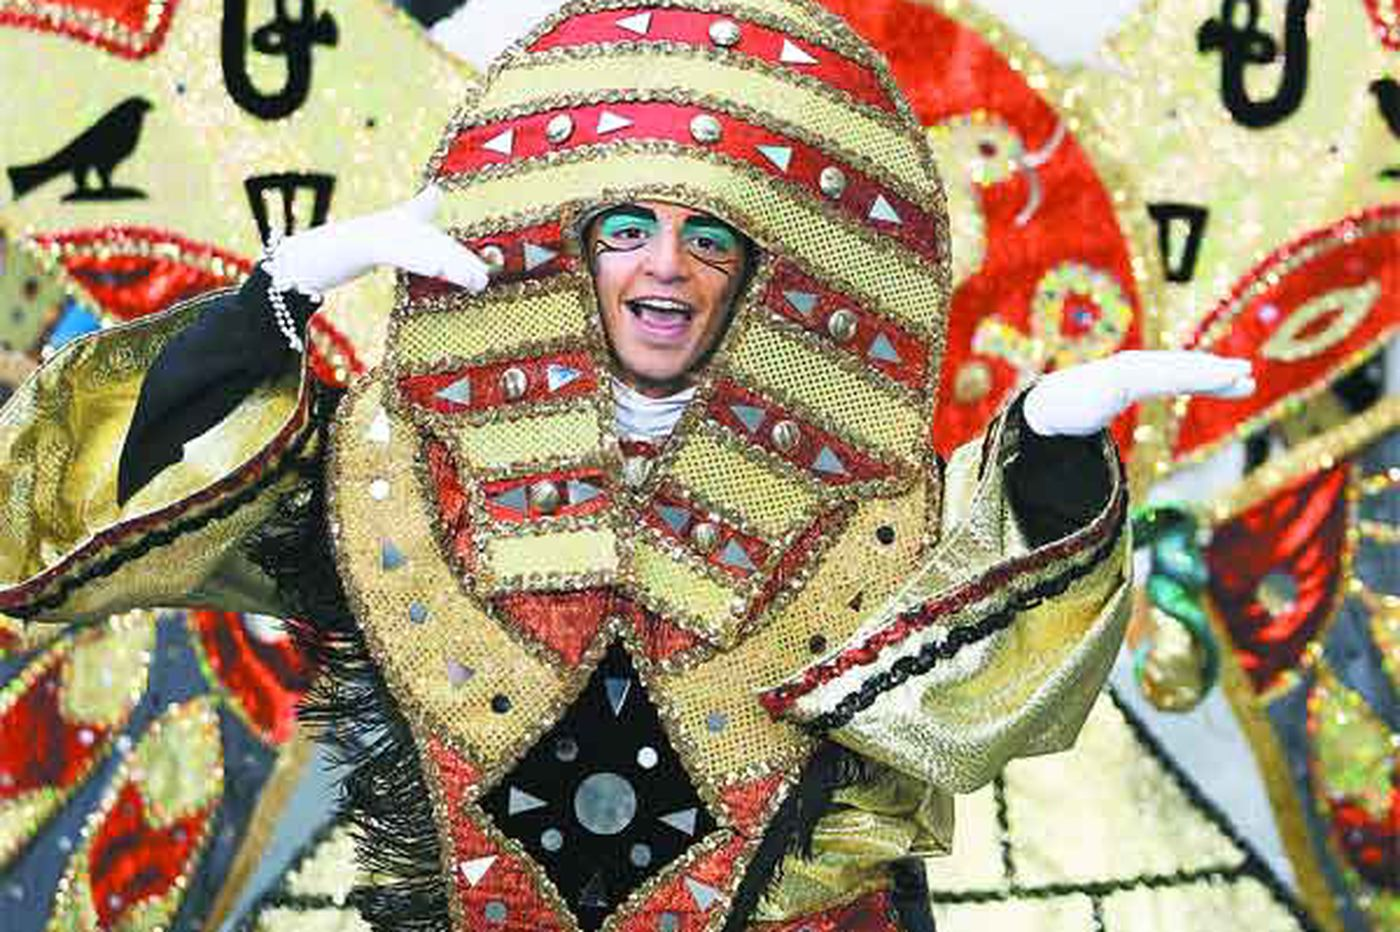 A Mummers' performance preview